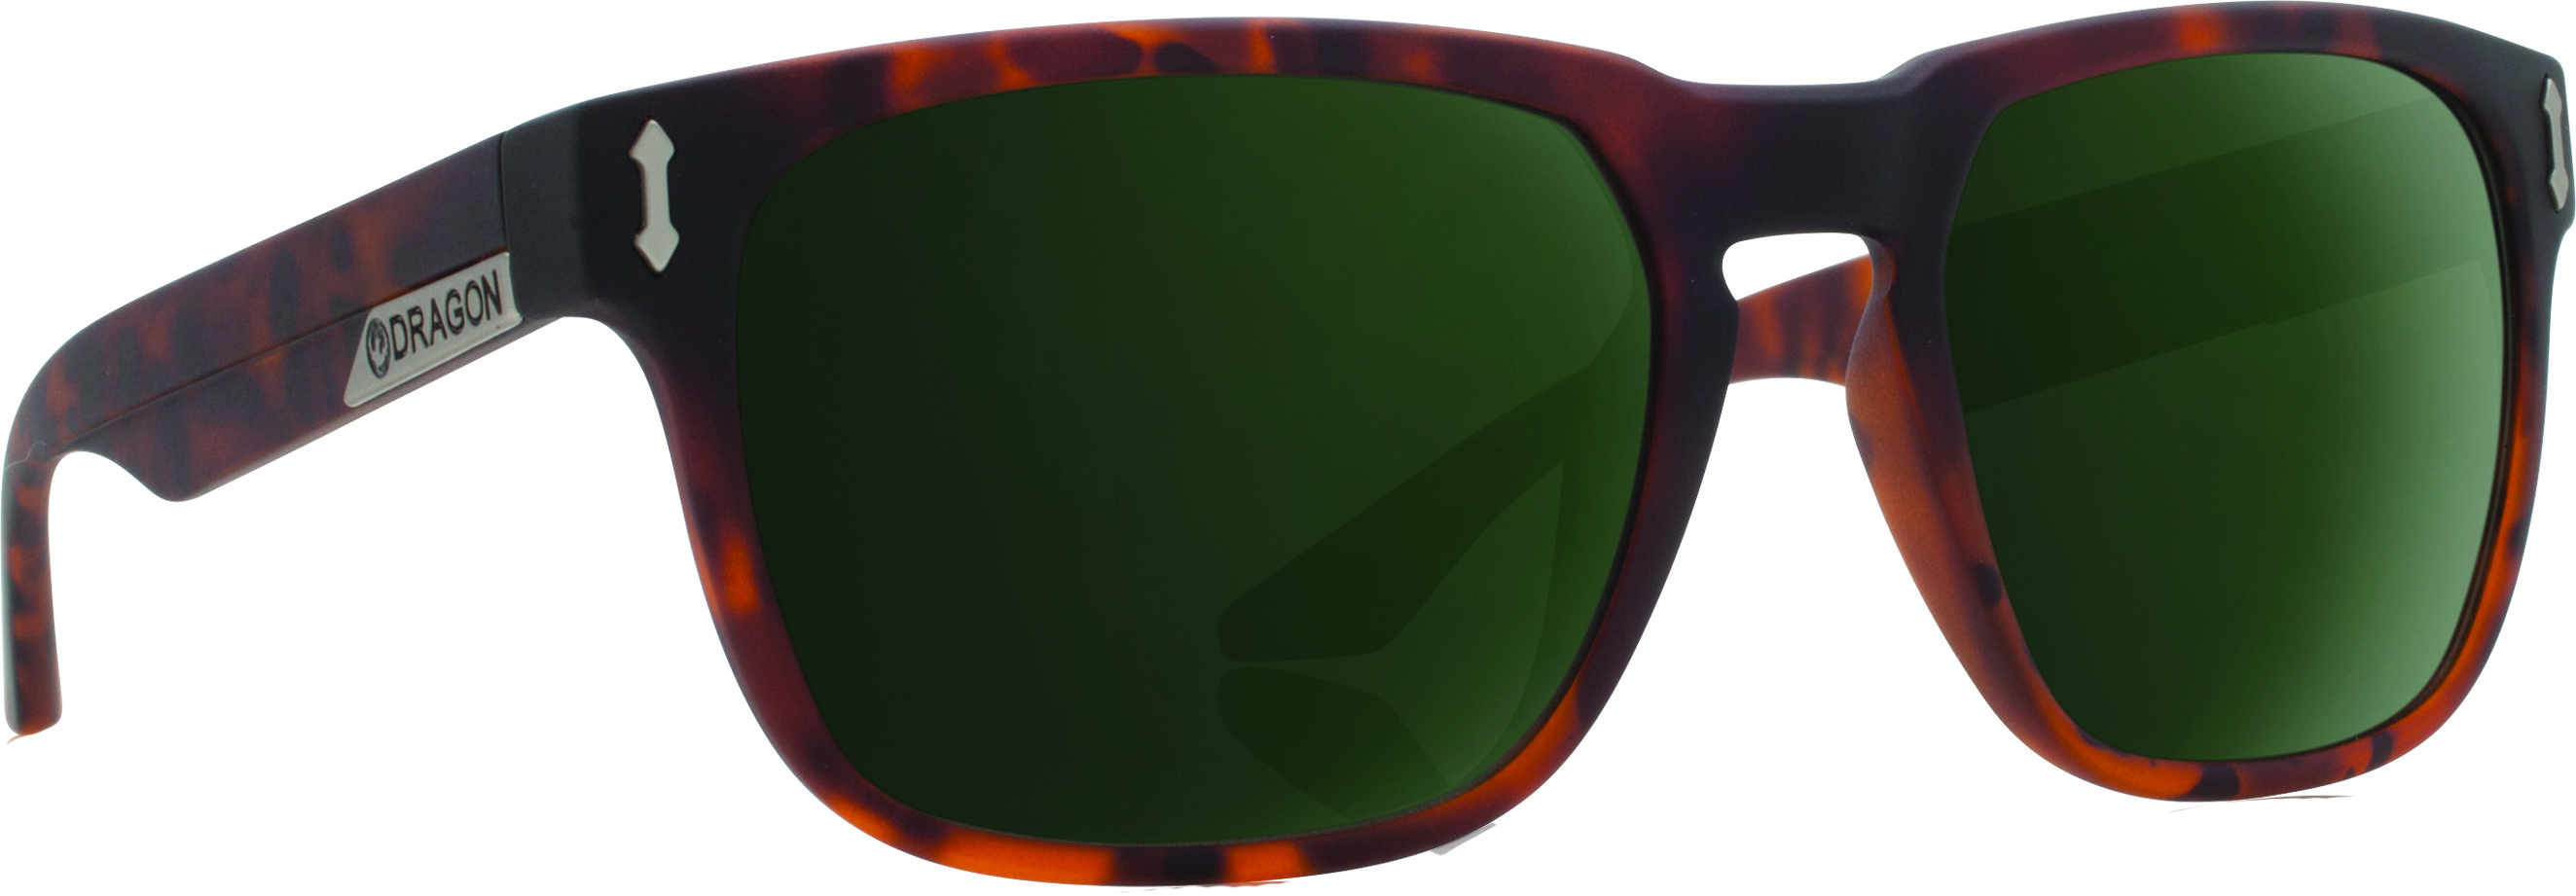 Monarch Sunglasses Matte Tortoise W/G15 Green Lens